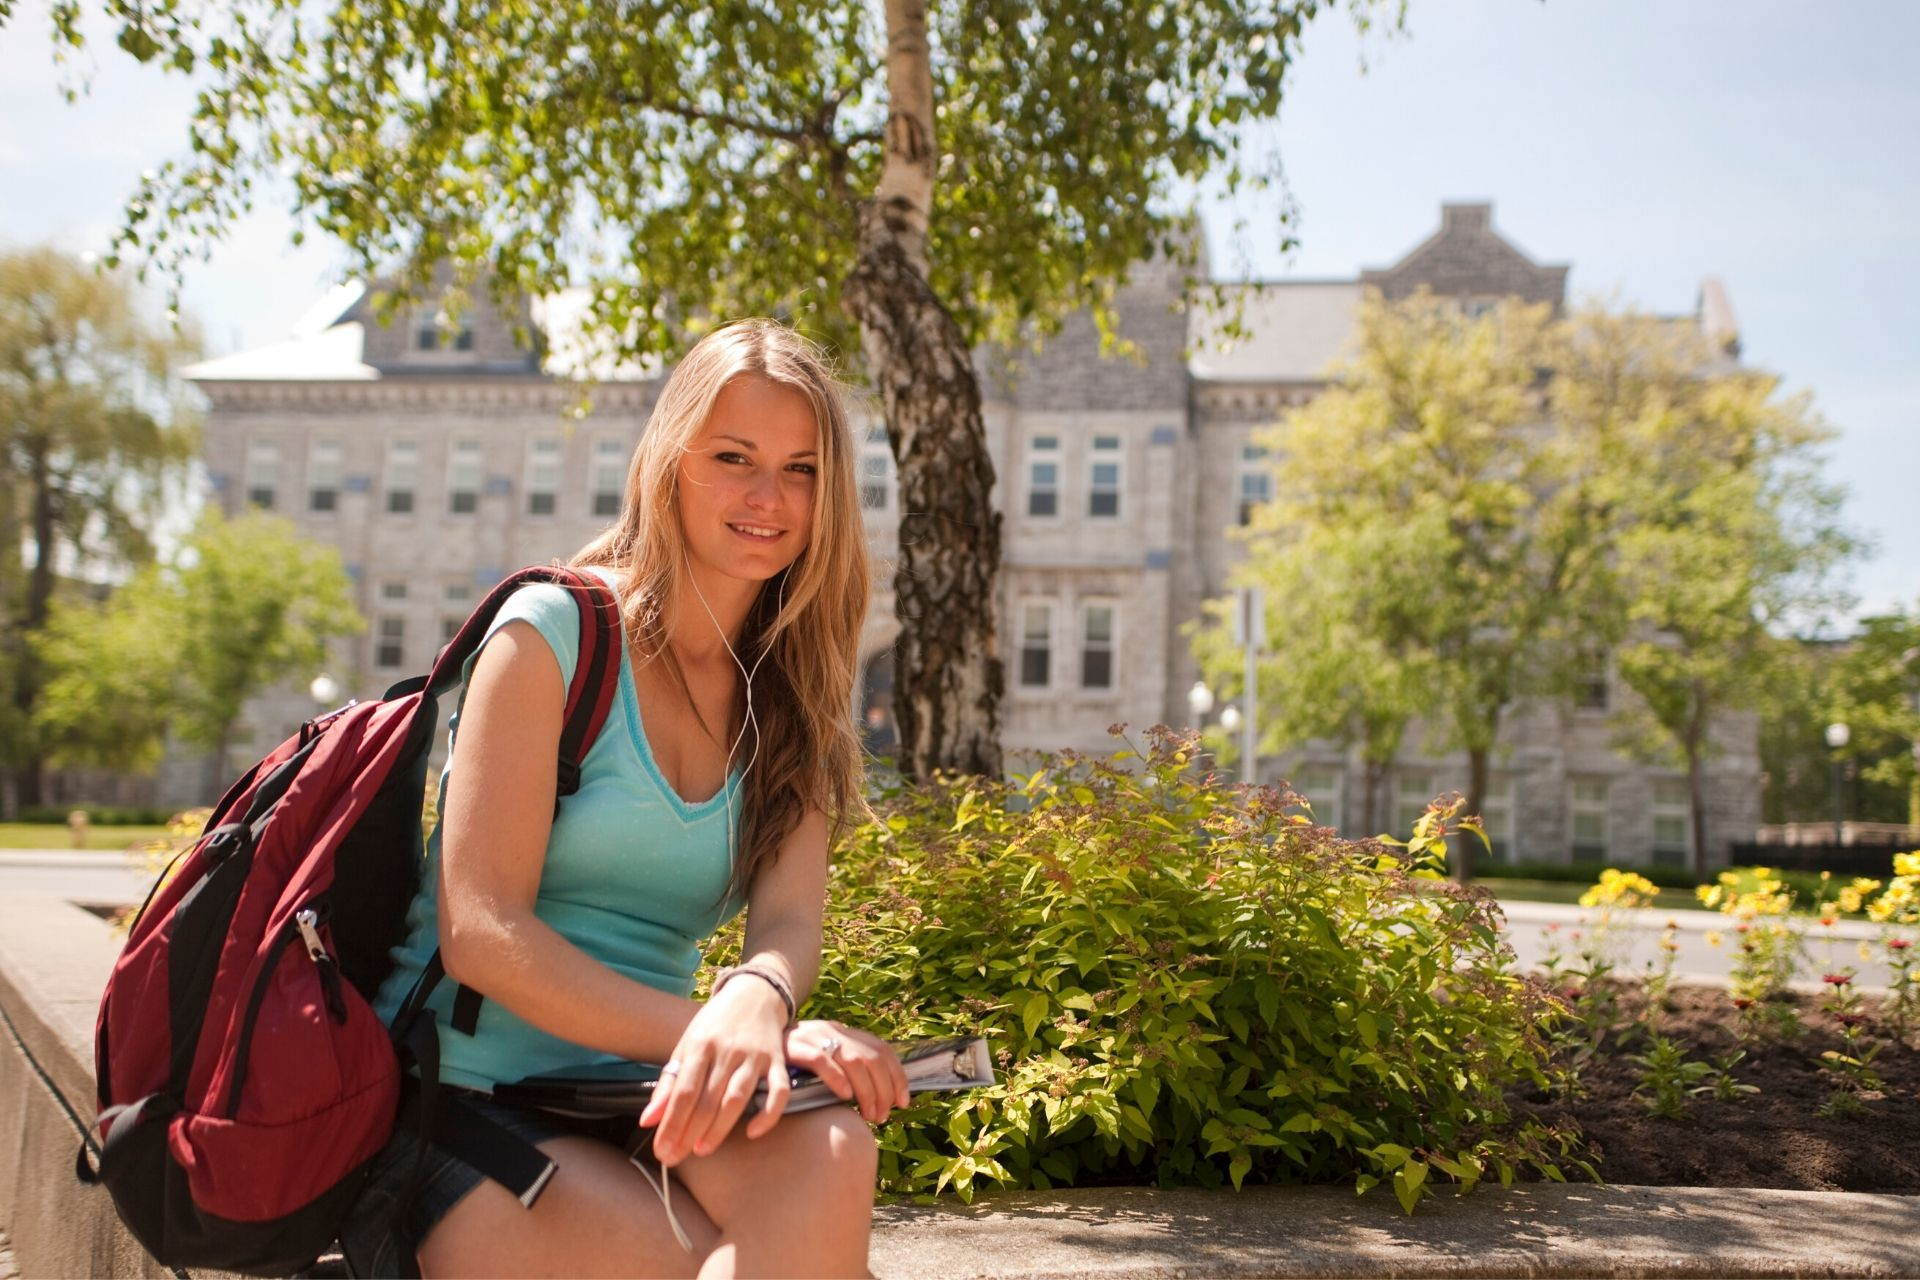 Things I Wish I Knew Before my Teen Applied to College